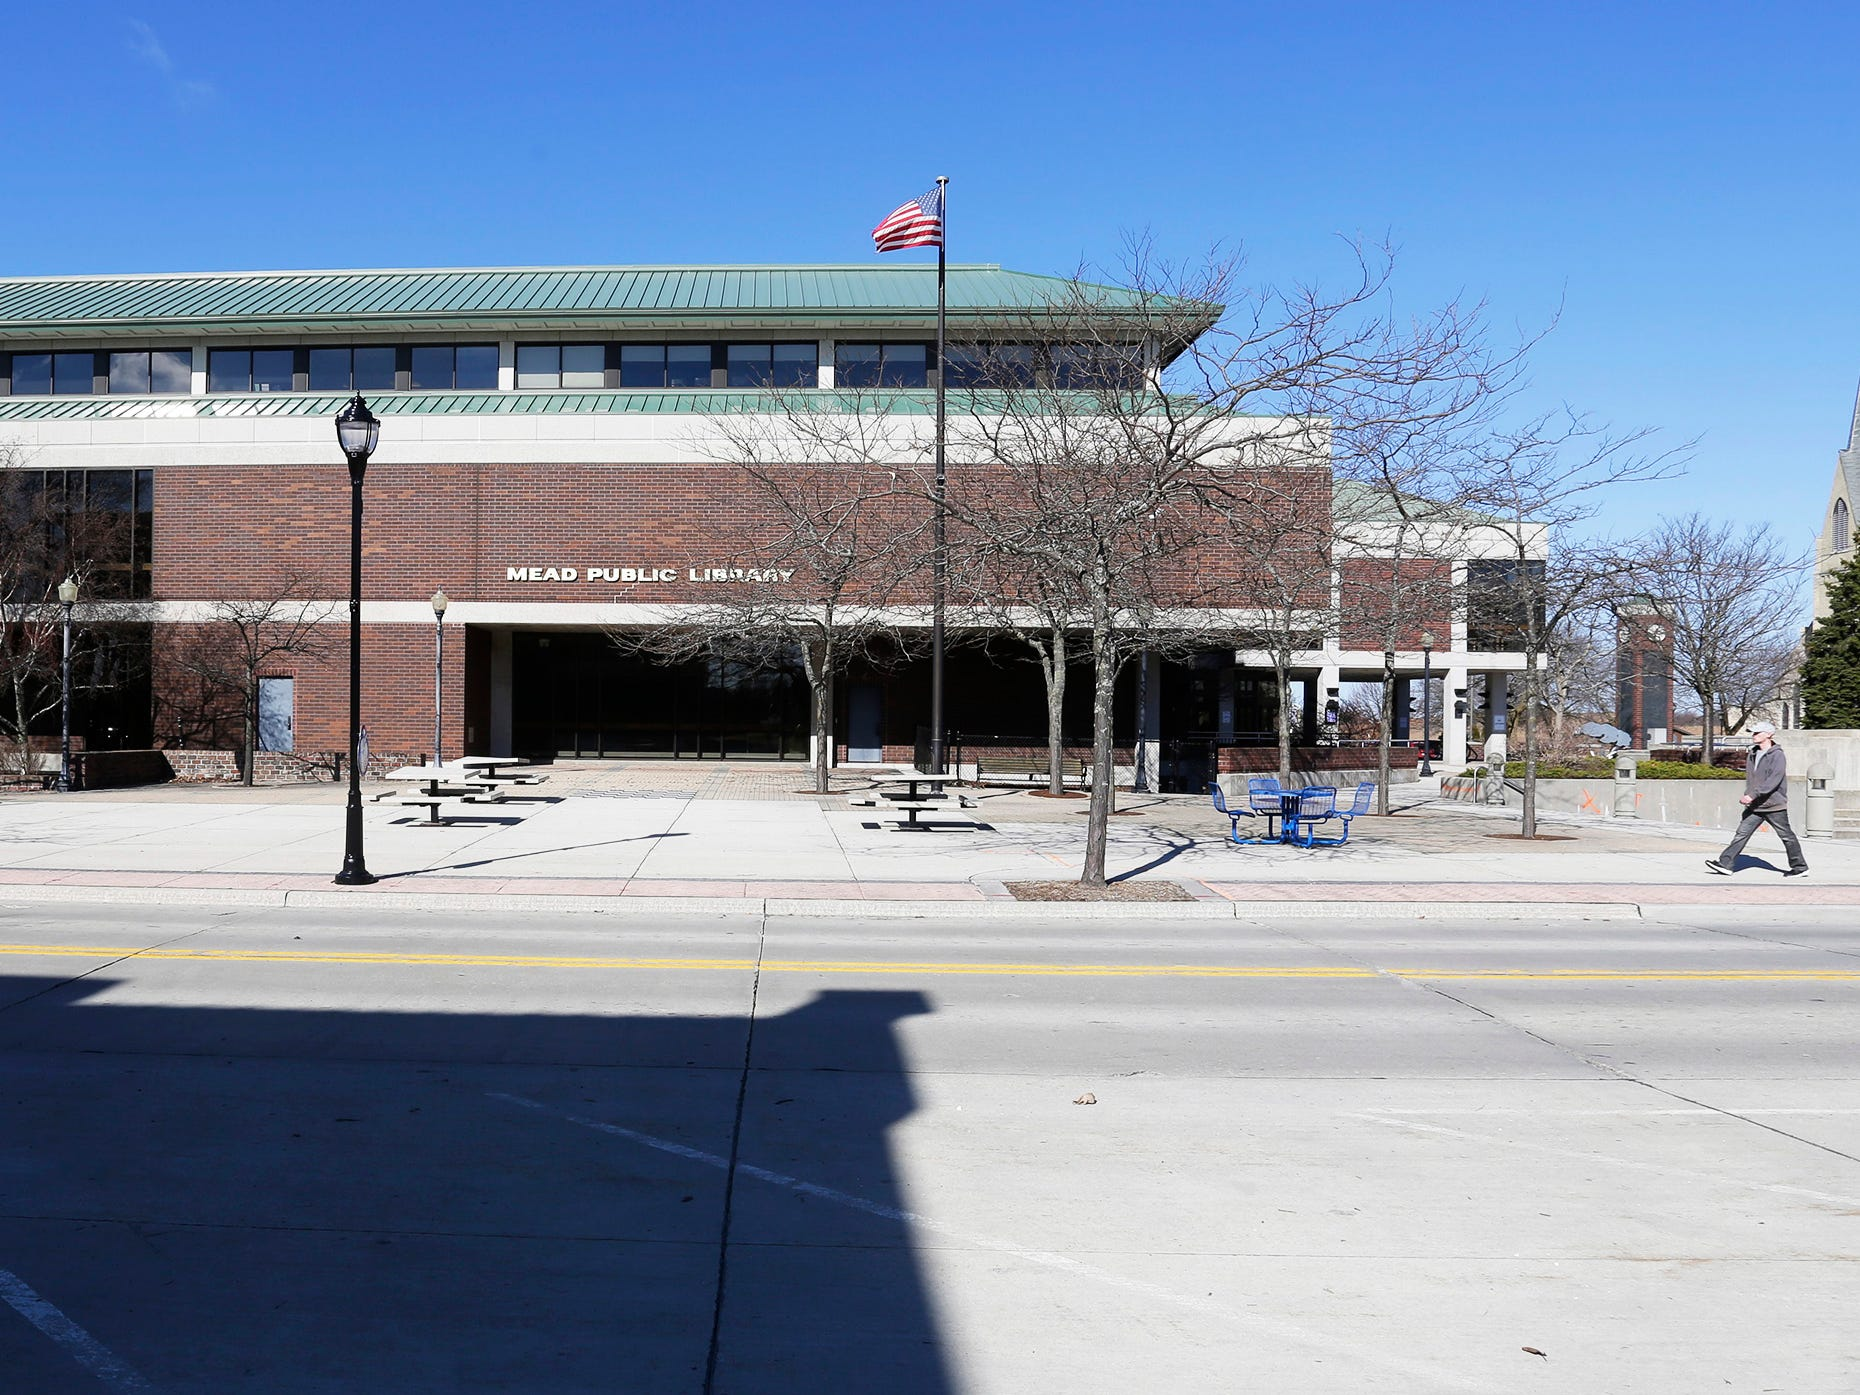 A view of the east side of Mead Public Library, Tuesday, April 9, 2019, in Sheboygan, Wis.